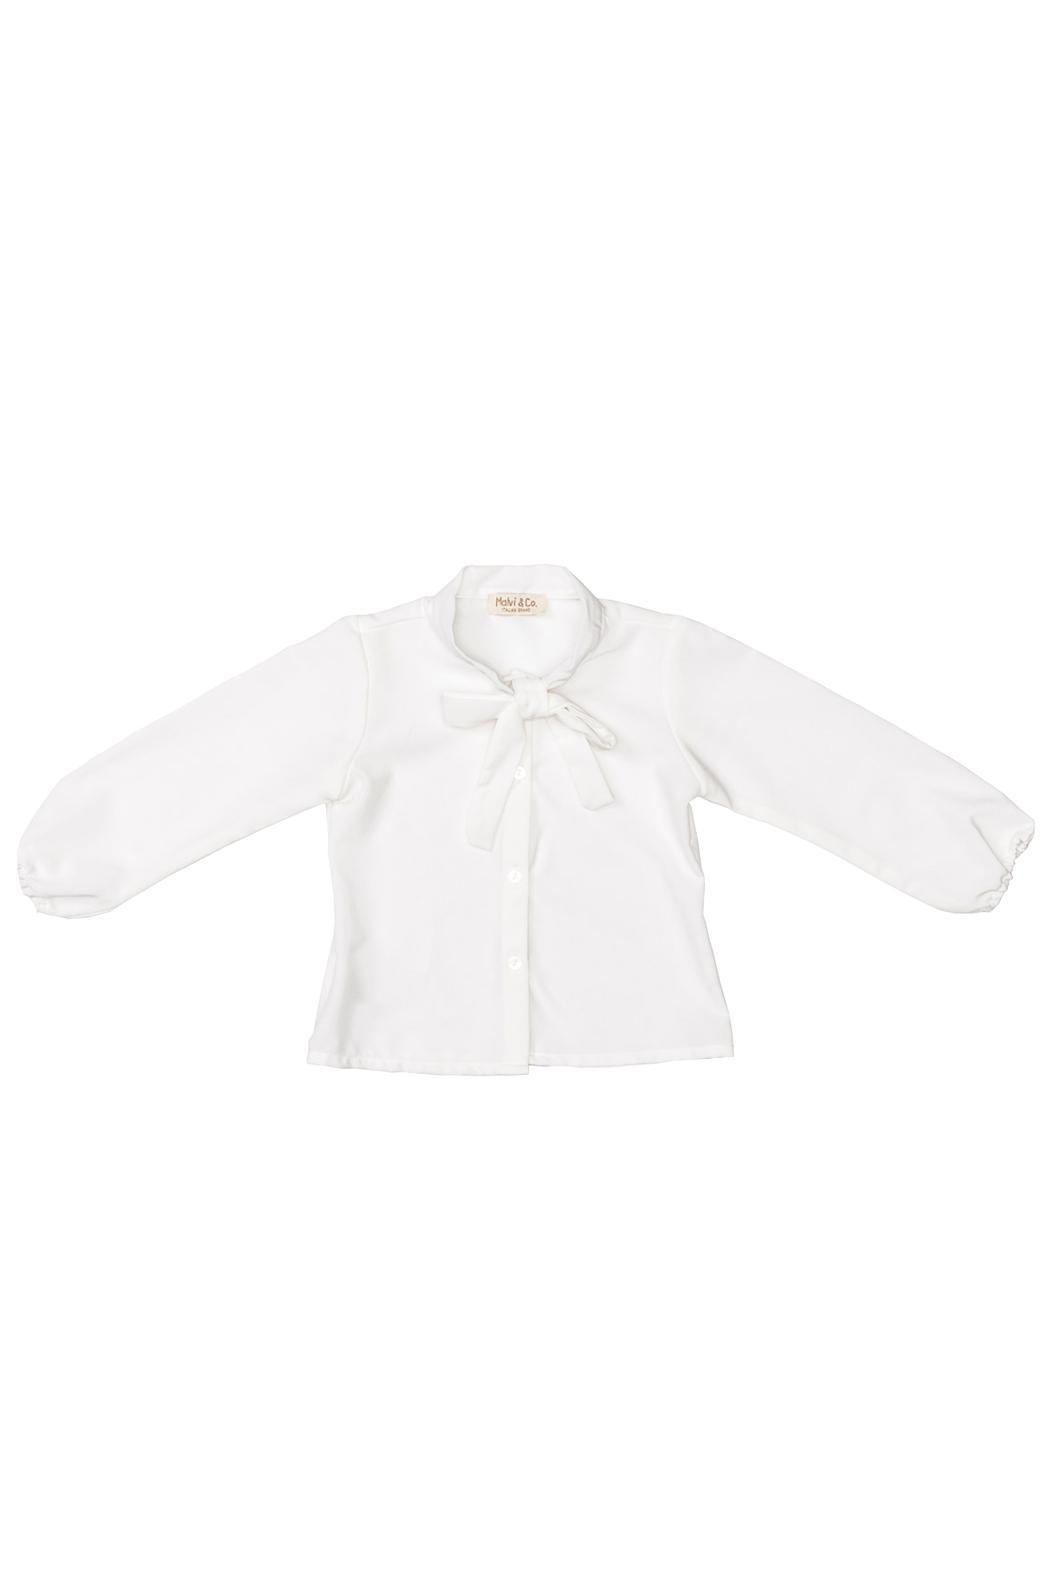 Malvi & Co. White Blouse. - Main Image